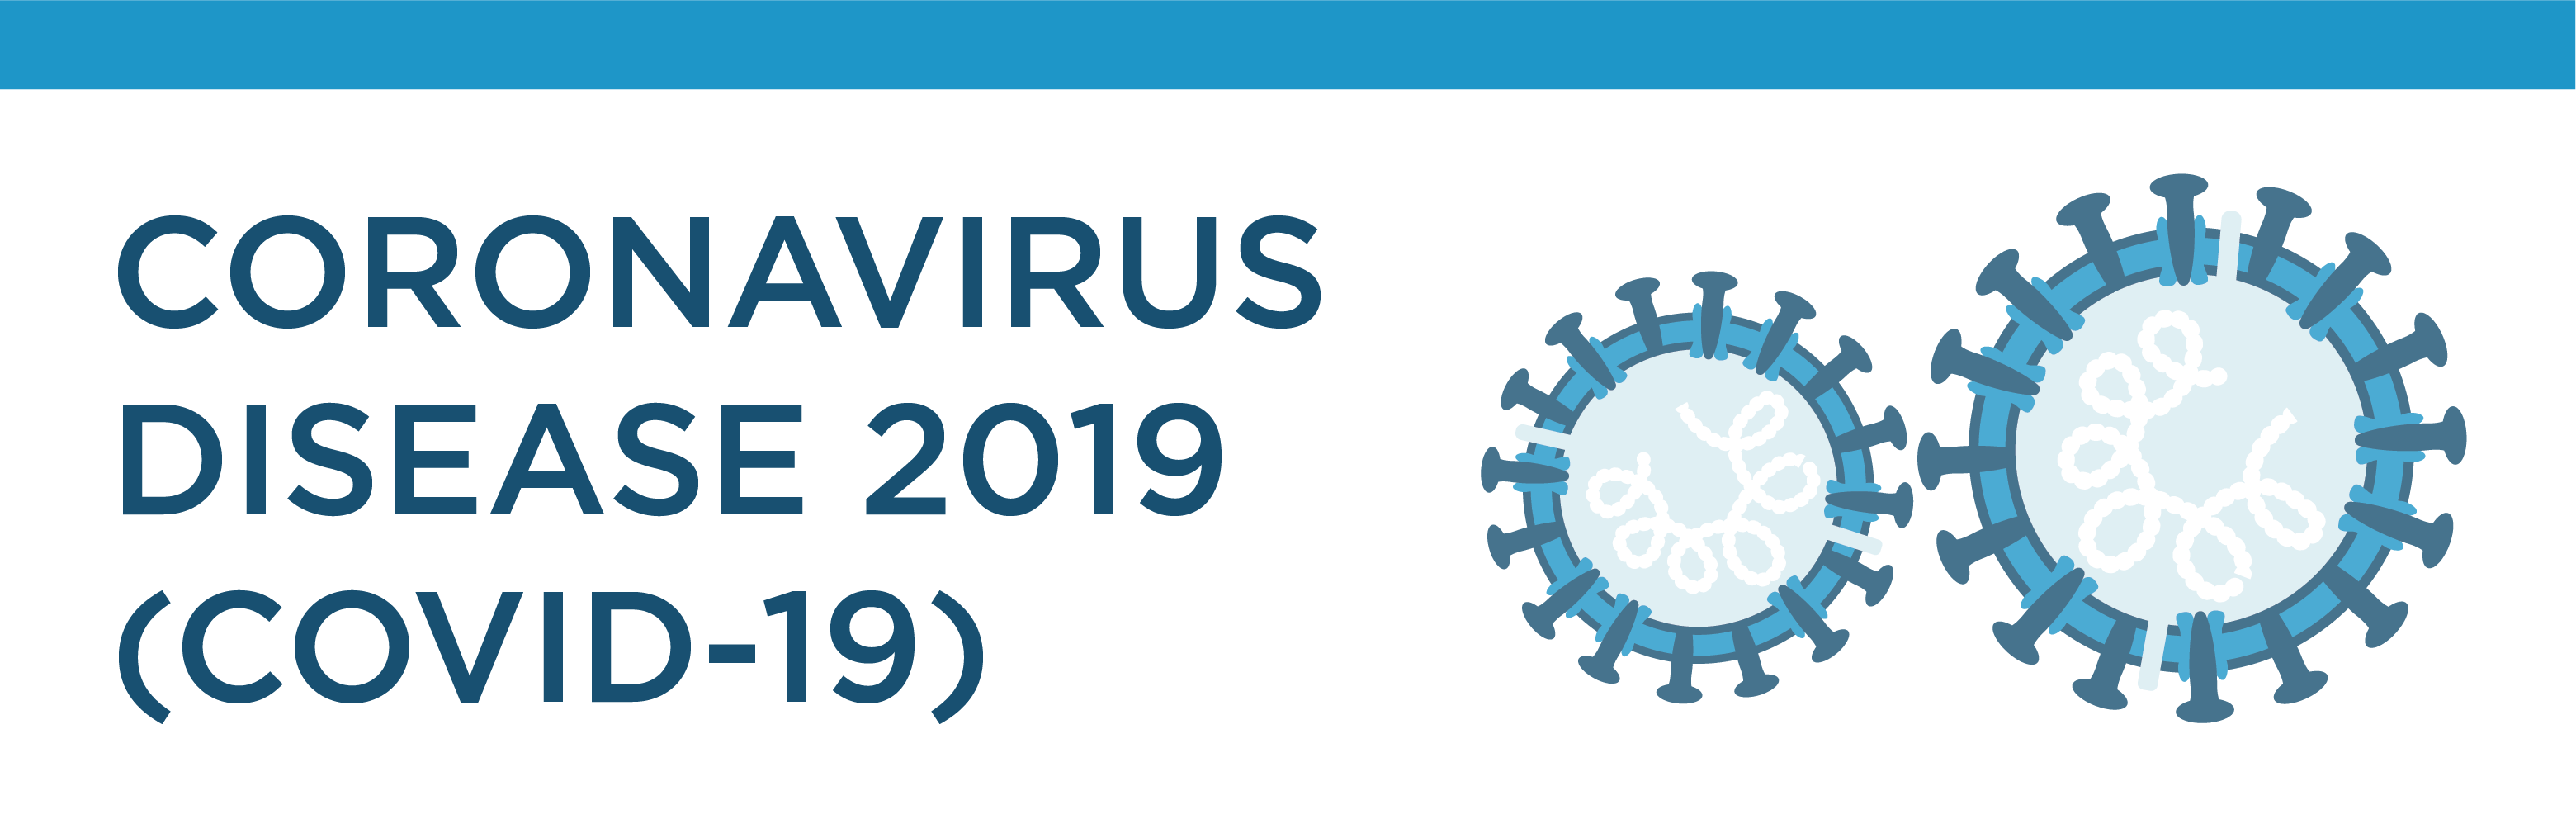 Coronavirus Disease 2019 text with coronavirus illustration